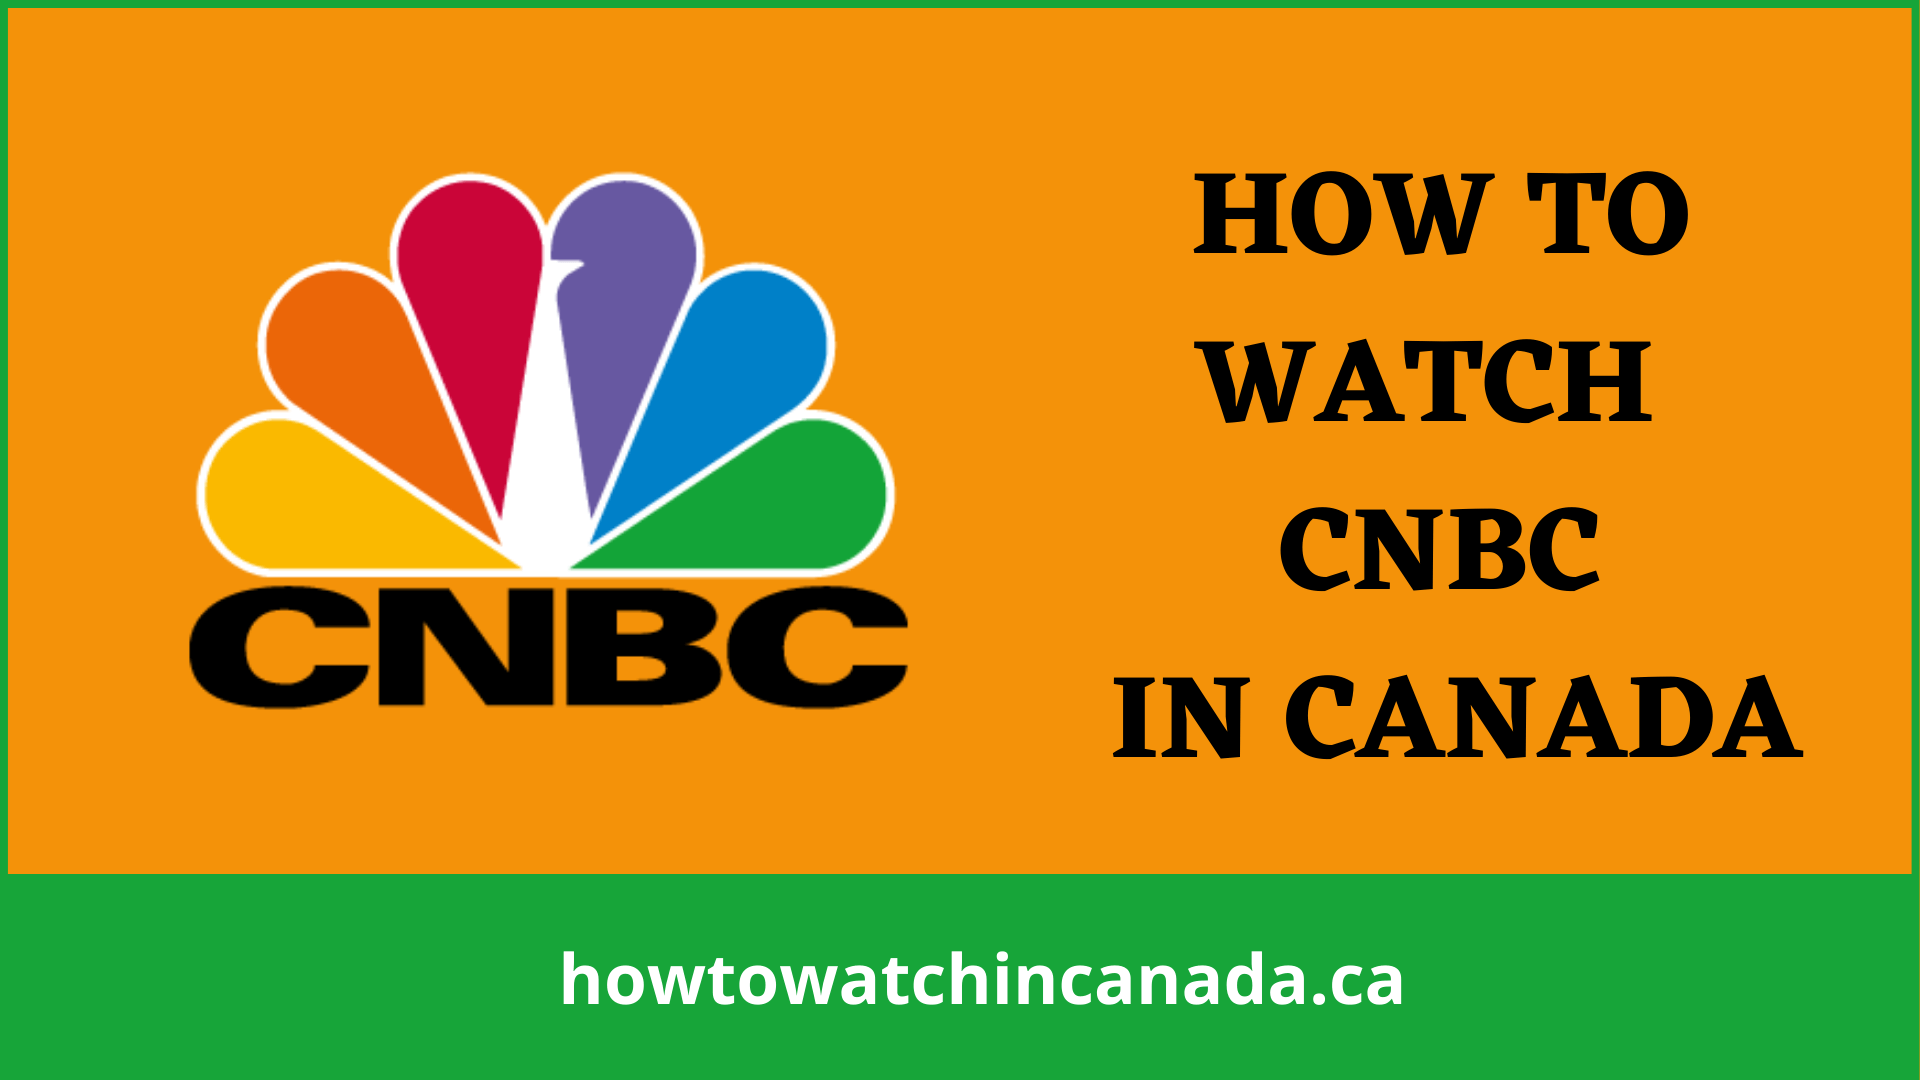 cnbc-feat-how-to-watch-in-canada